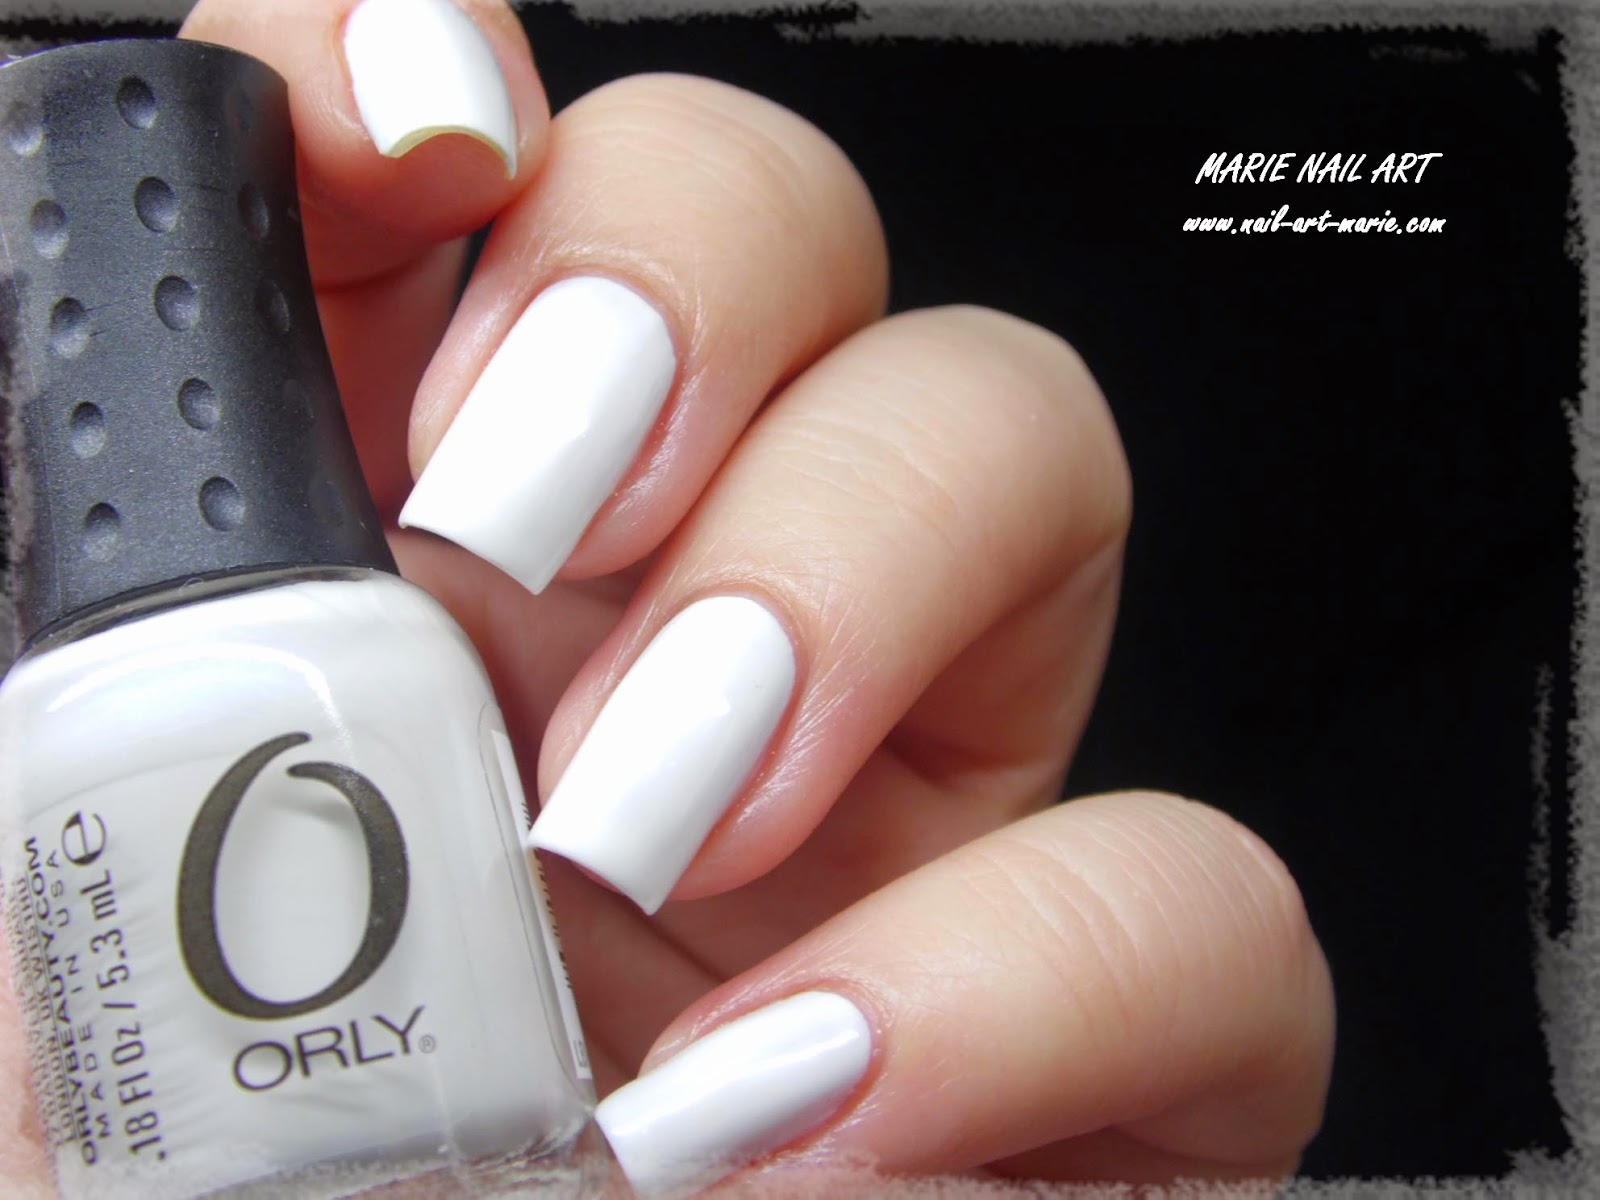 Orly Dayglow9